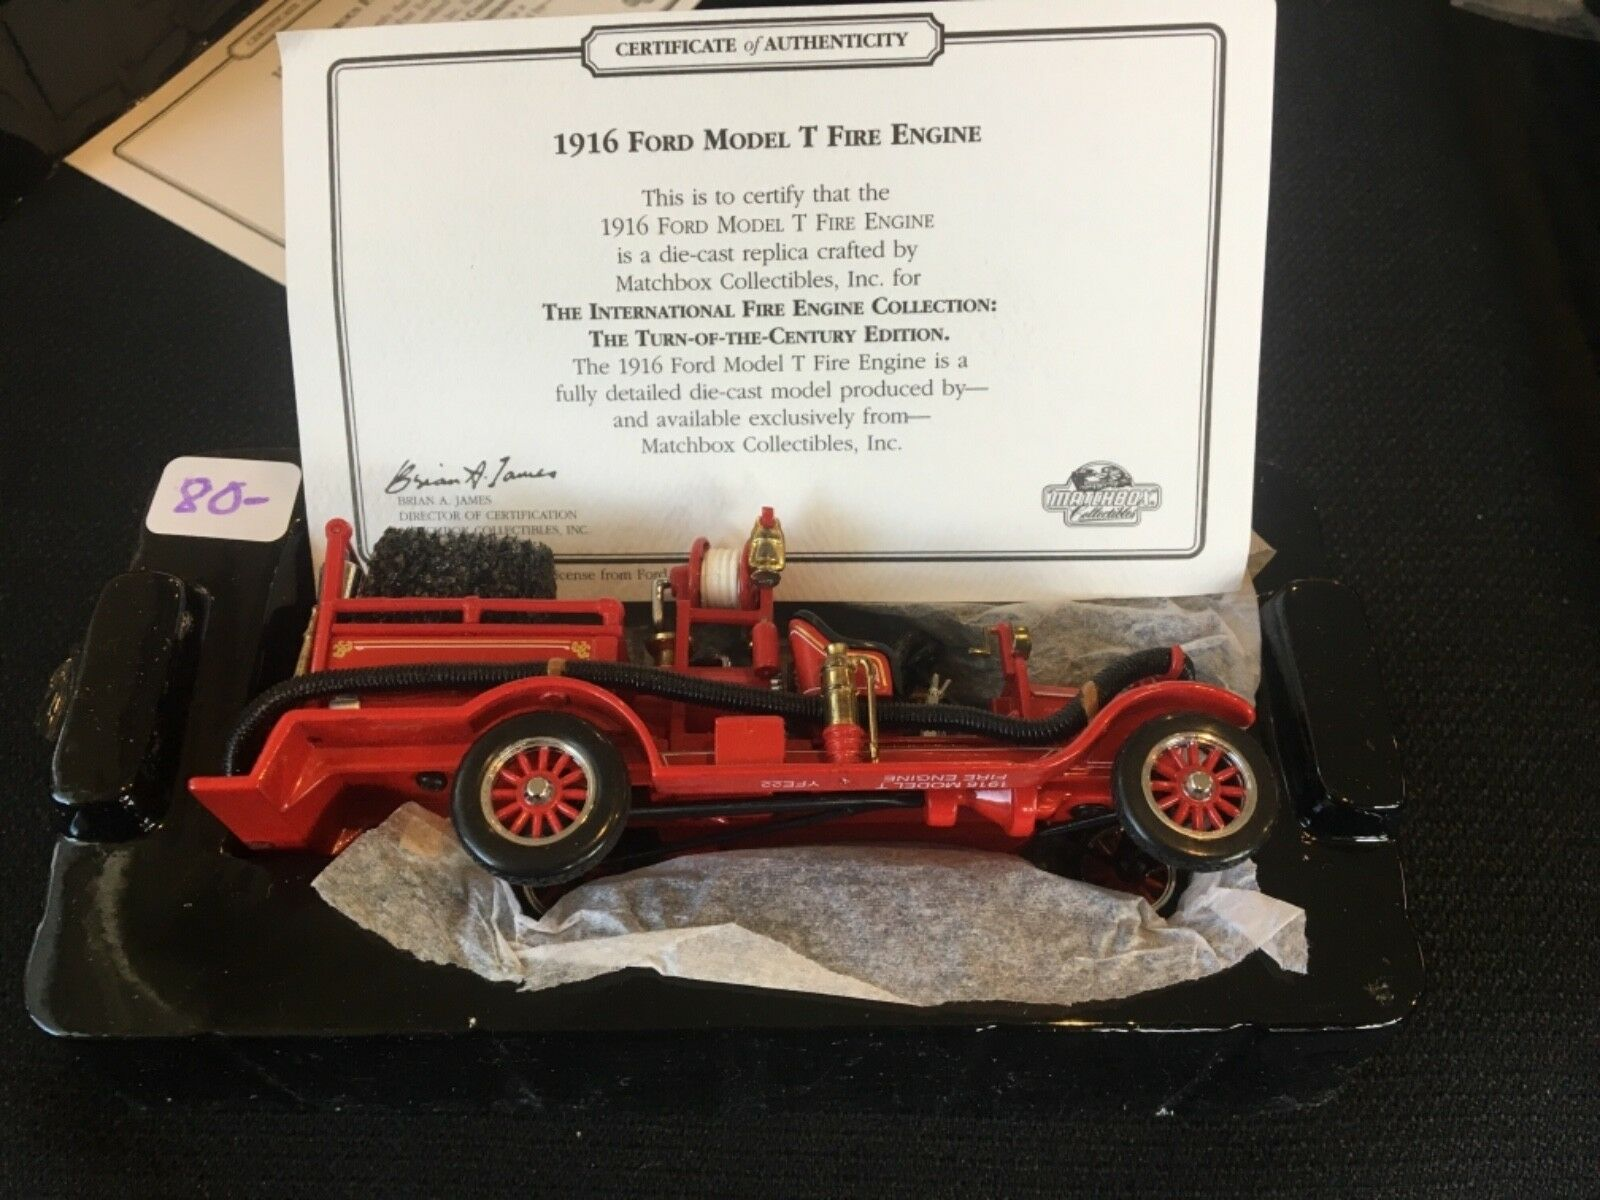 Matchbox Die-Cast Collectible - 1916 1916 1916 Ford Model T Fire Engine c0ee44